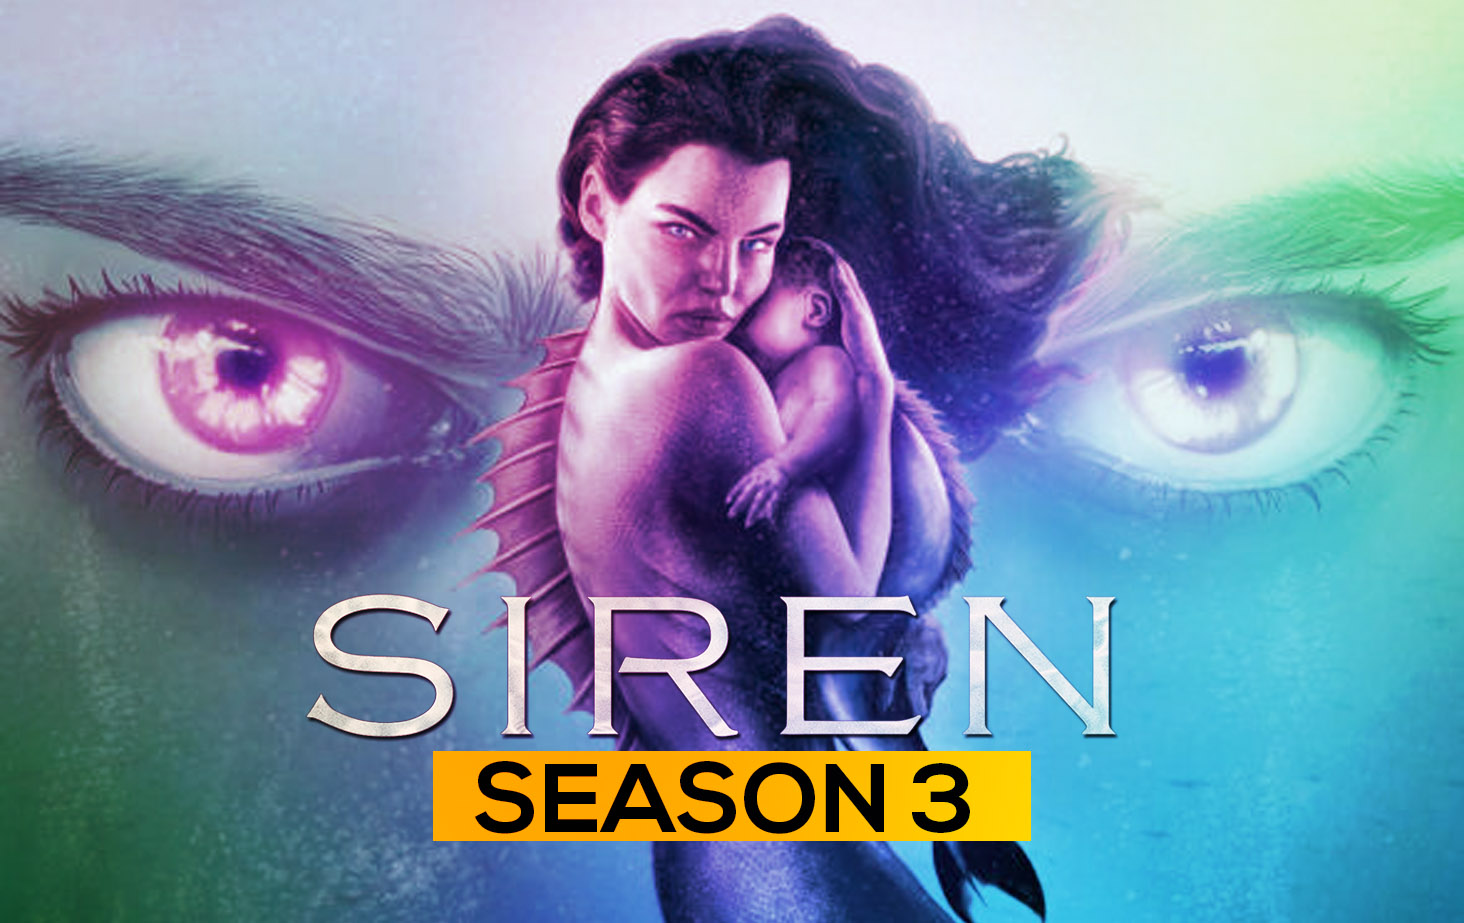 Siren Season 3 Episode 11: Will There Be Another Episode in Siren Season 3? Here Are All The Details Associated With Siren